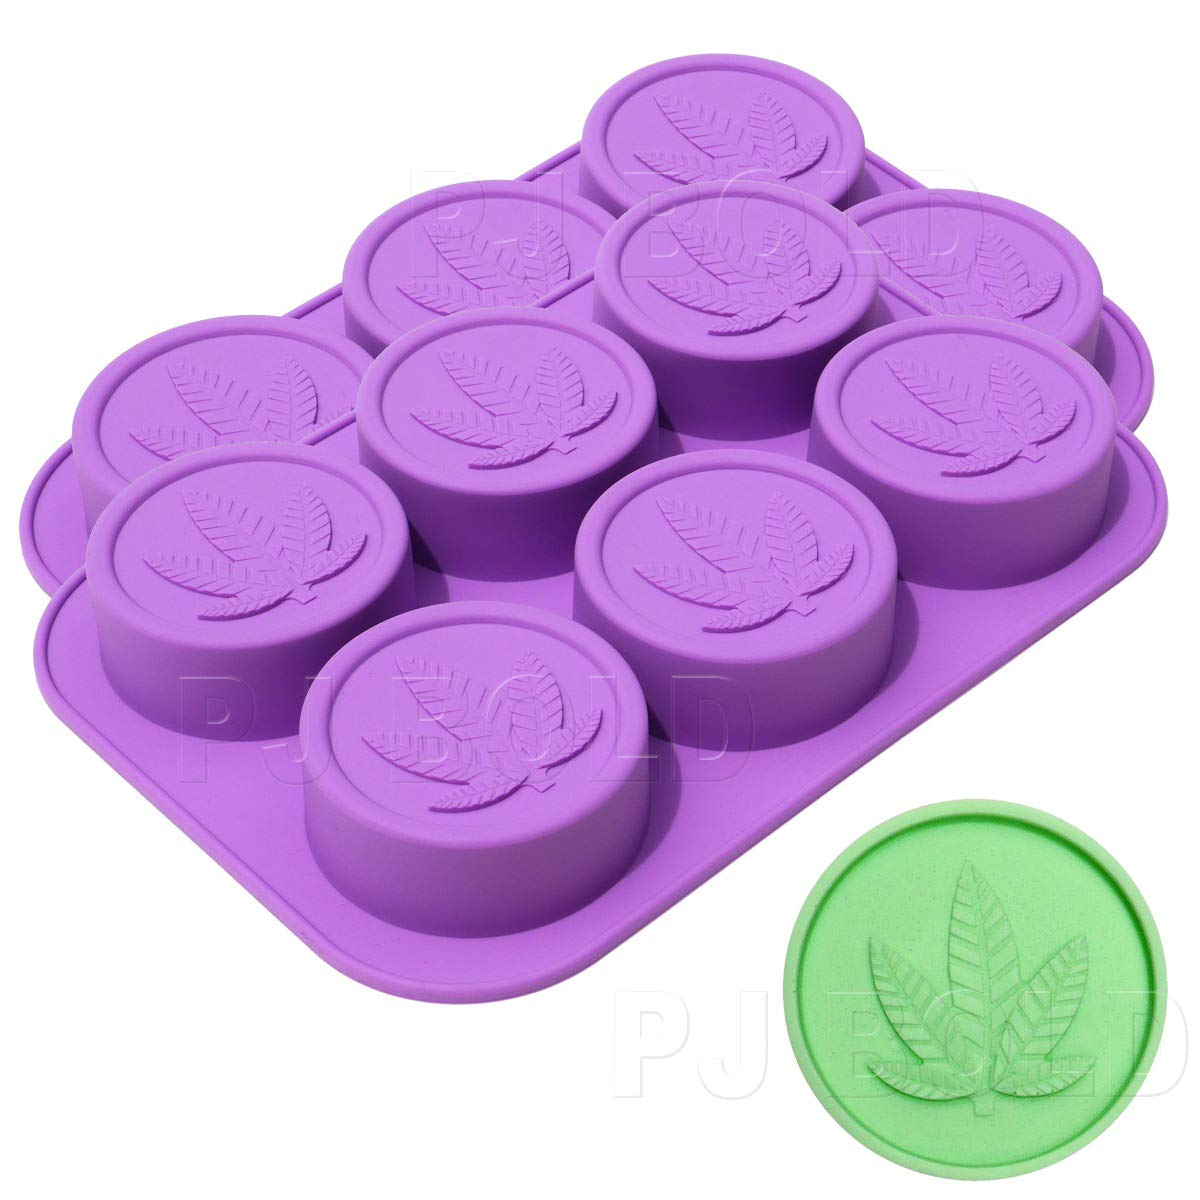 Marijuana Leaf Silicone Soap, Butter, Candy Mold Tray, 2 Pack, 12 Cavities by PJ Bold